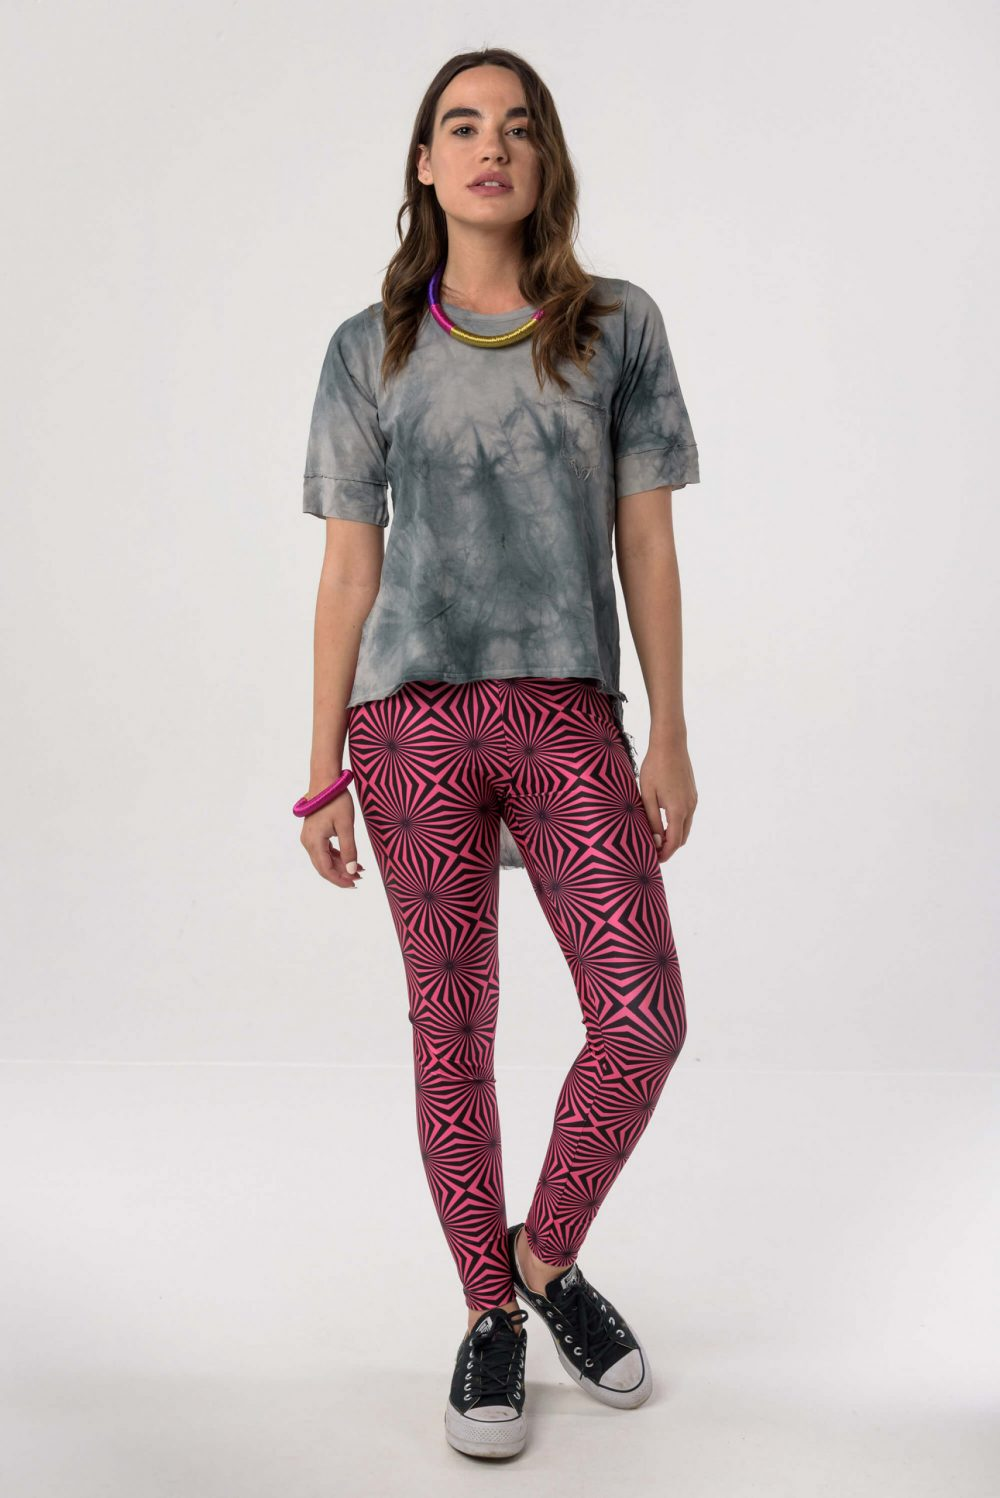 Heartbeatink Neon Pink Leggings / Libertee Nancy t-shirt